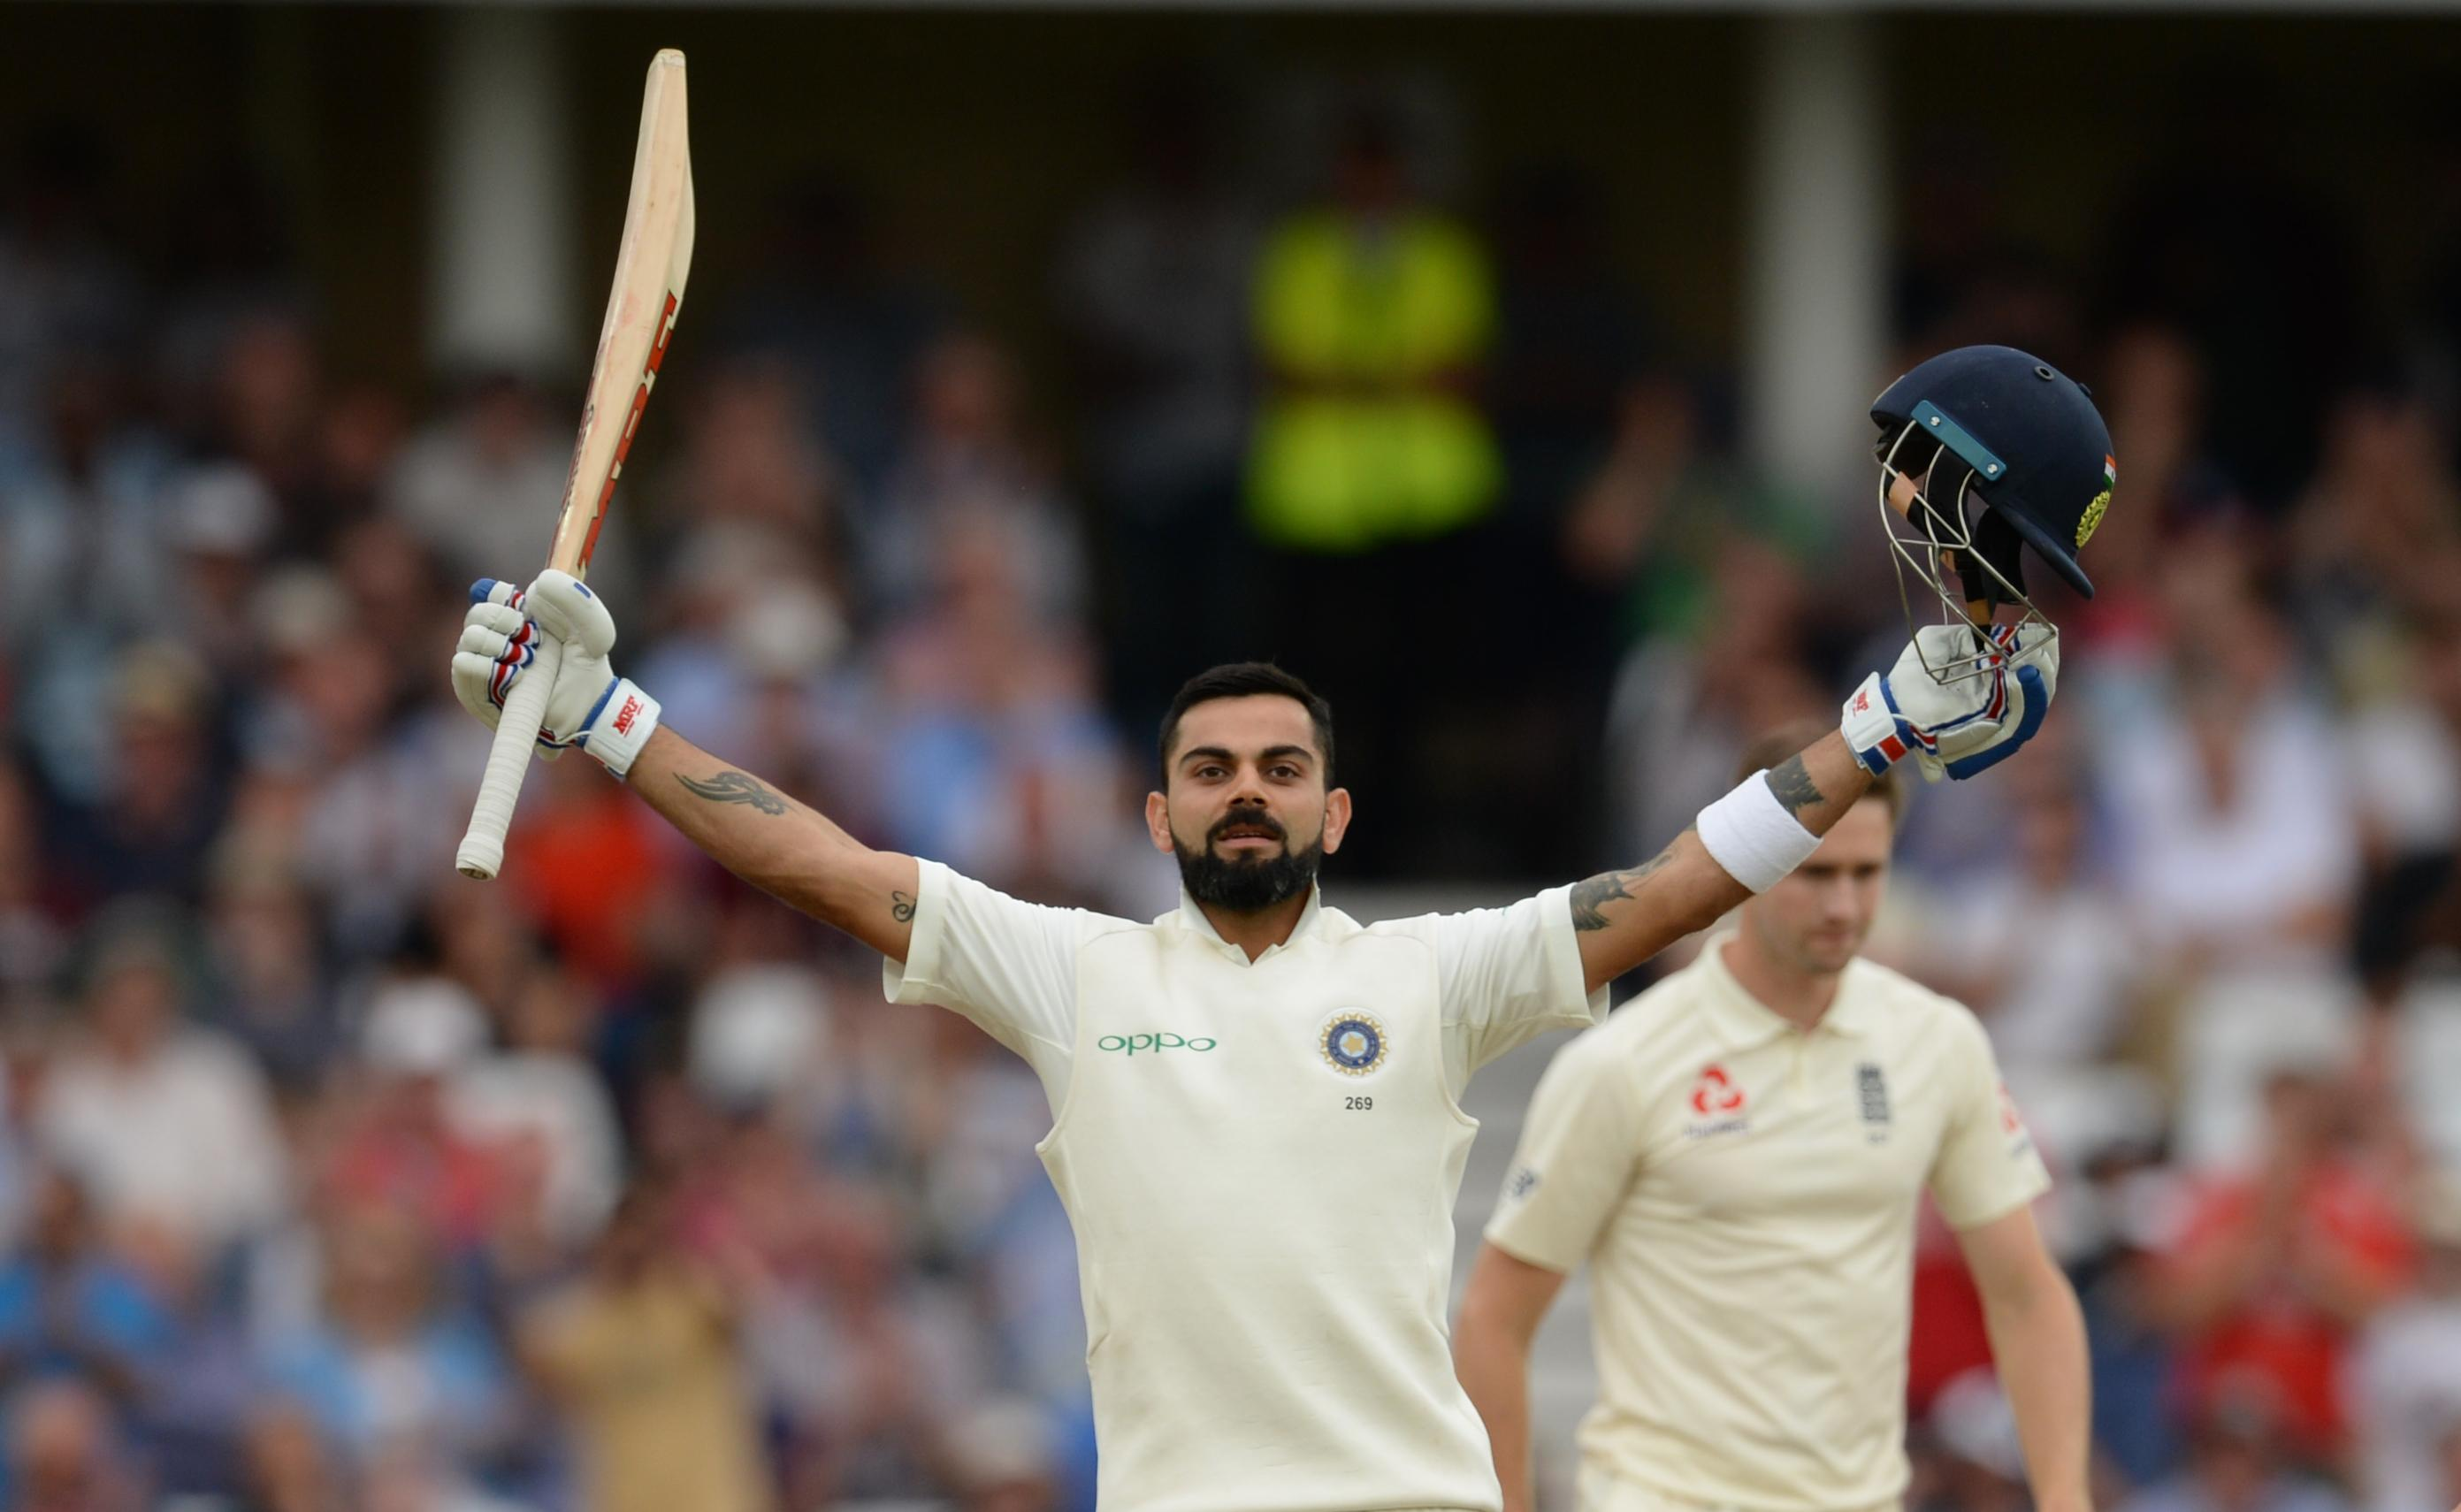 Virat Kohli was in impressive form as he tormented England's bowlers